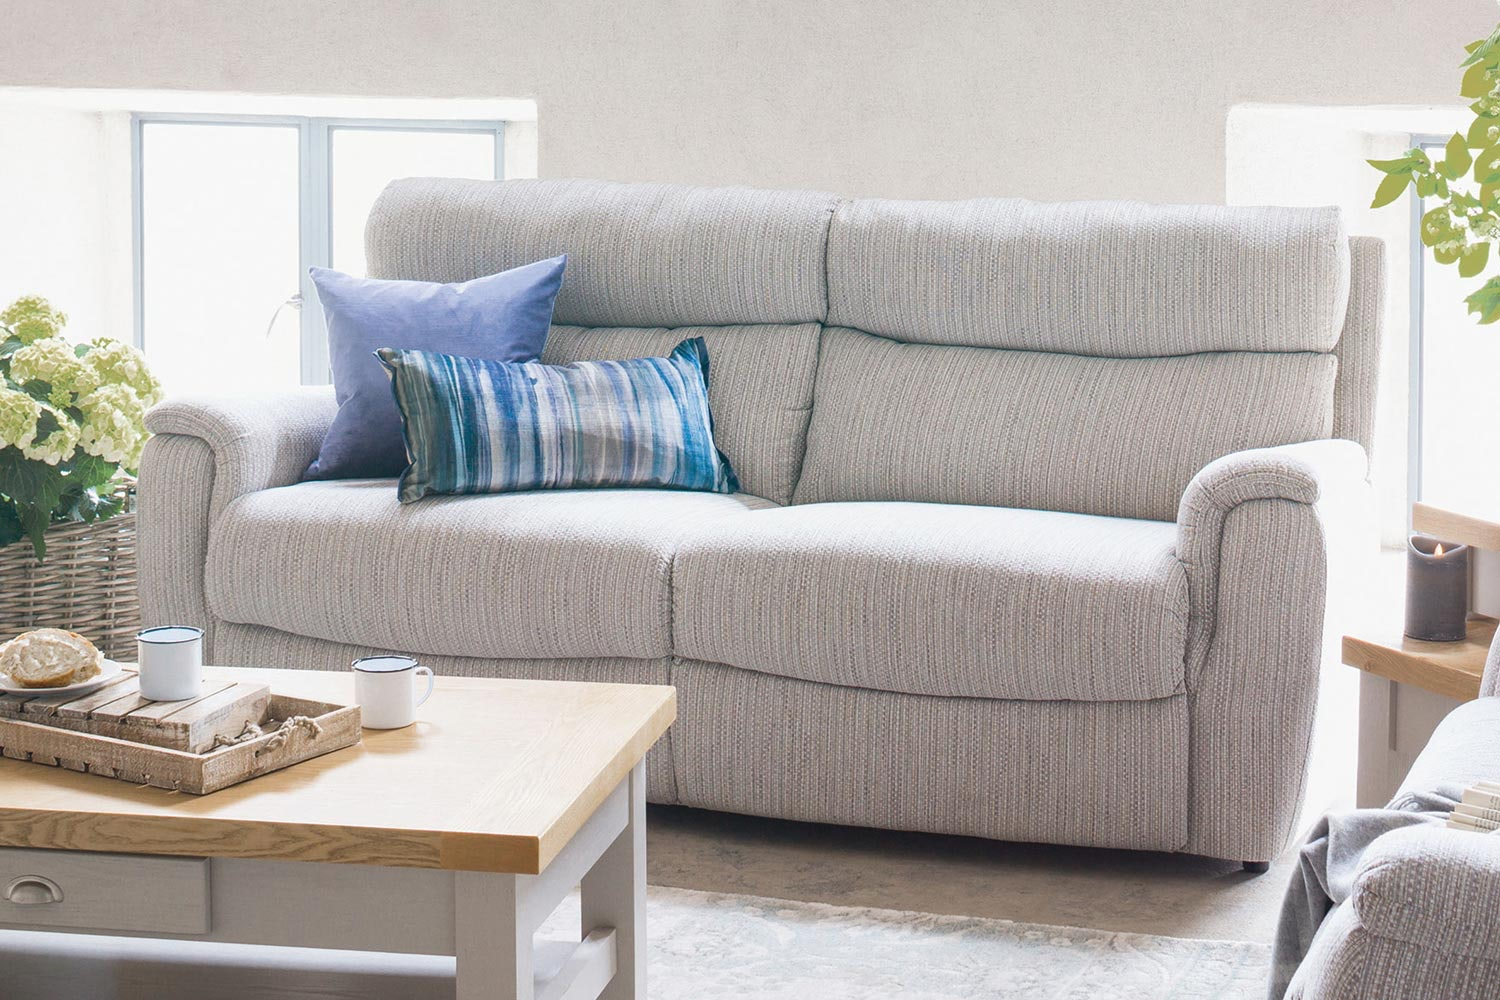 Denver 3 Seater Sofa